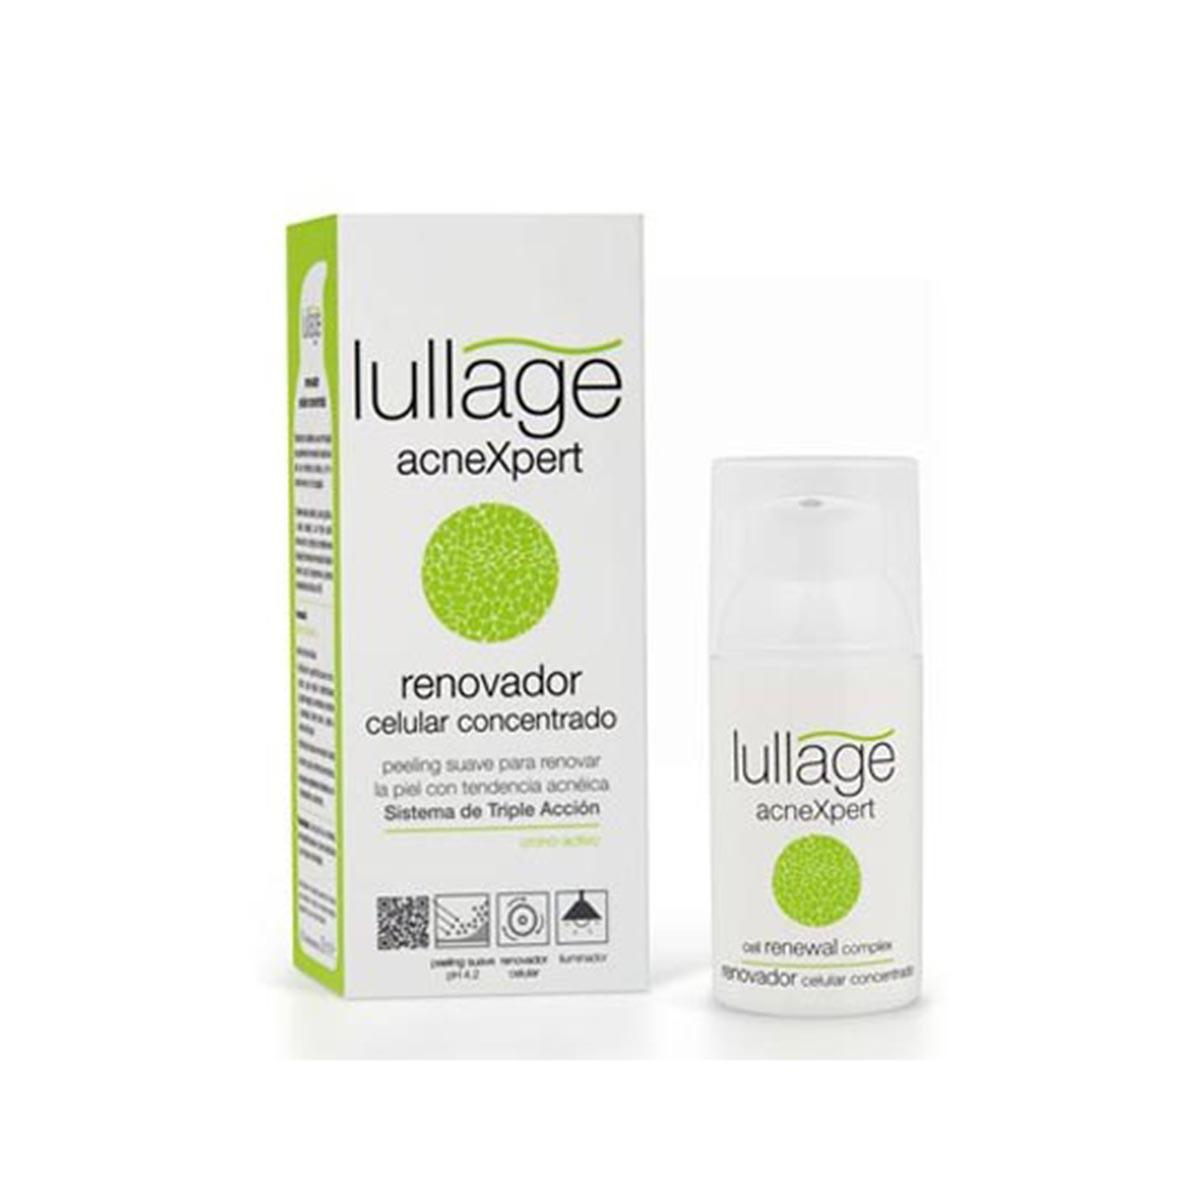 Consumo Lullage Acne Expert Cell Renewal Complex 30 ml